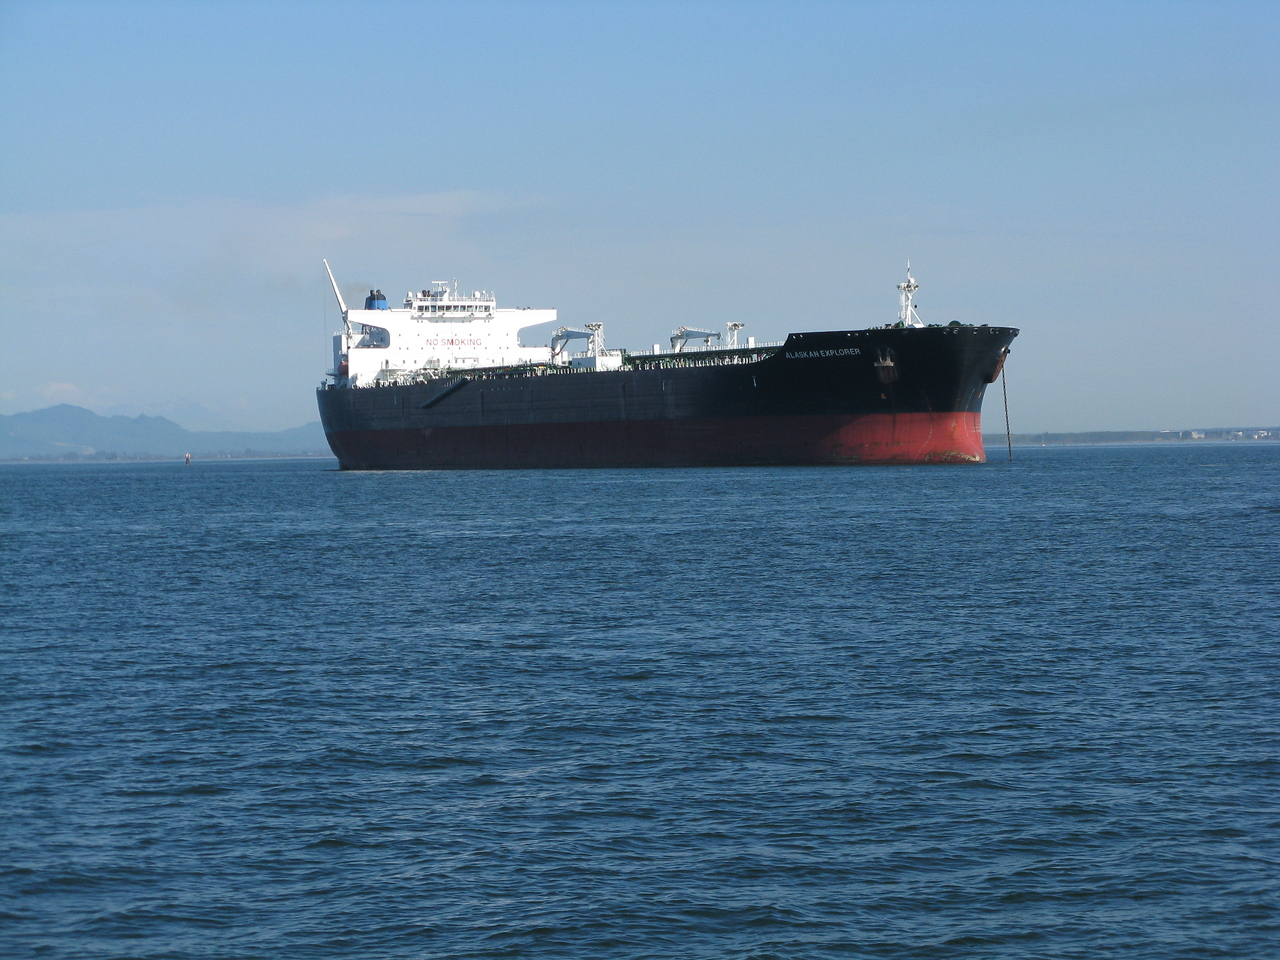 An oil tanker, apparently empty, anchored off the refinery east of Anacortes.